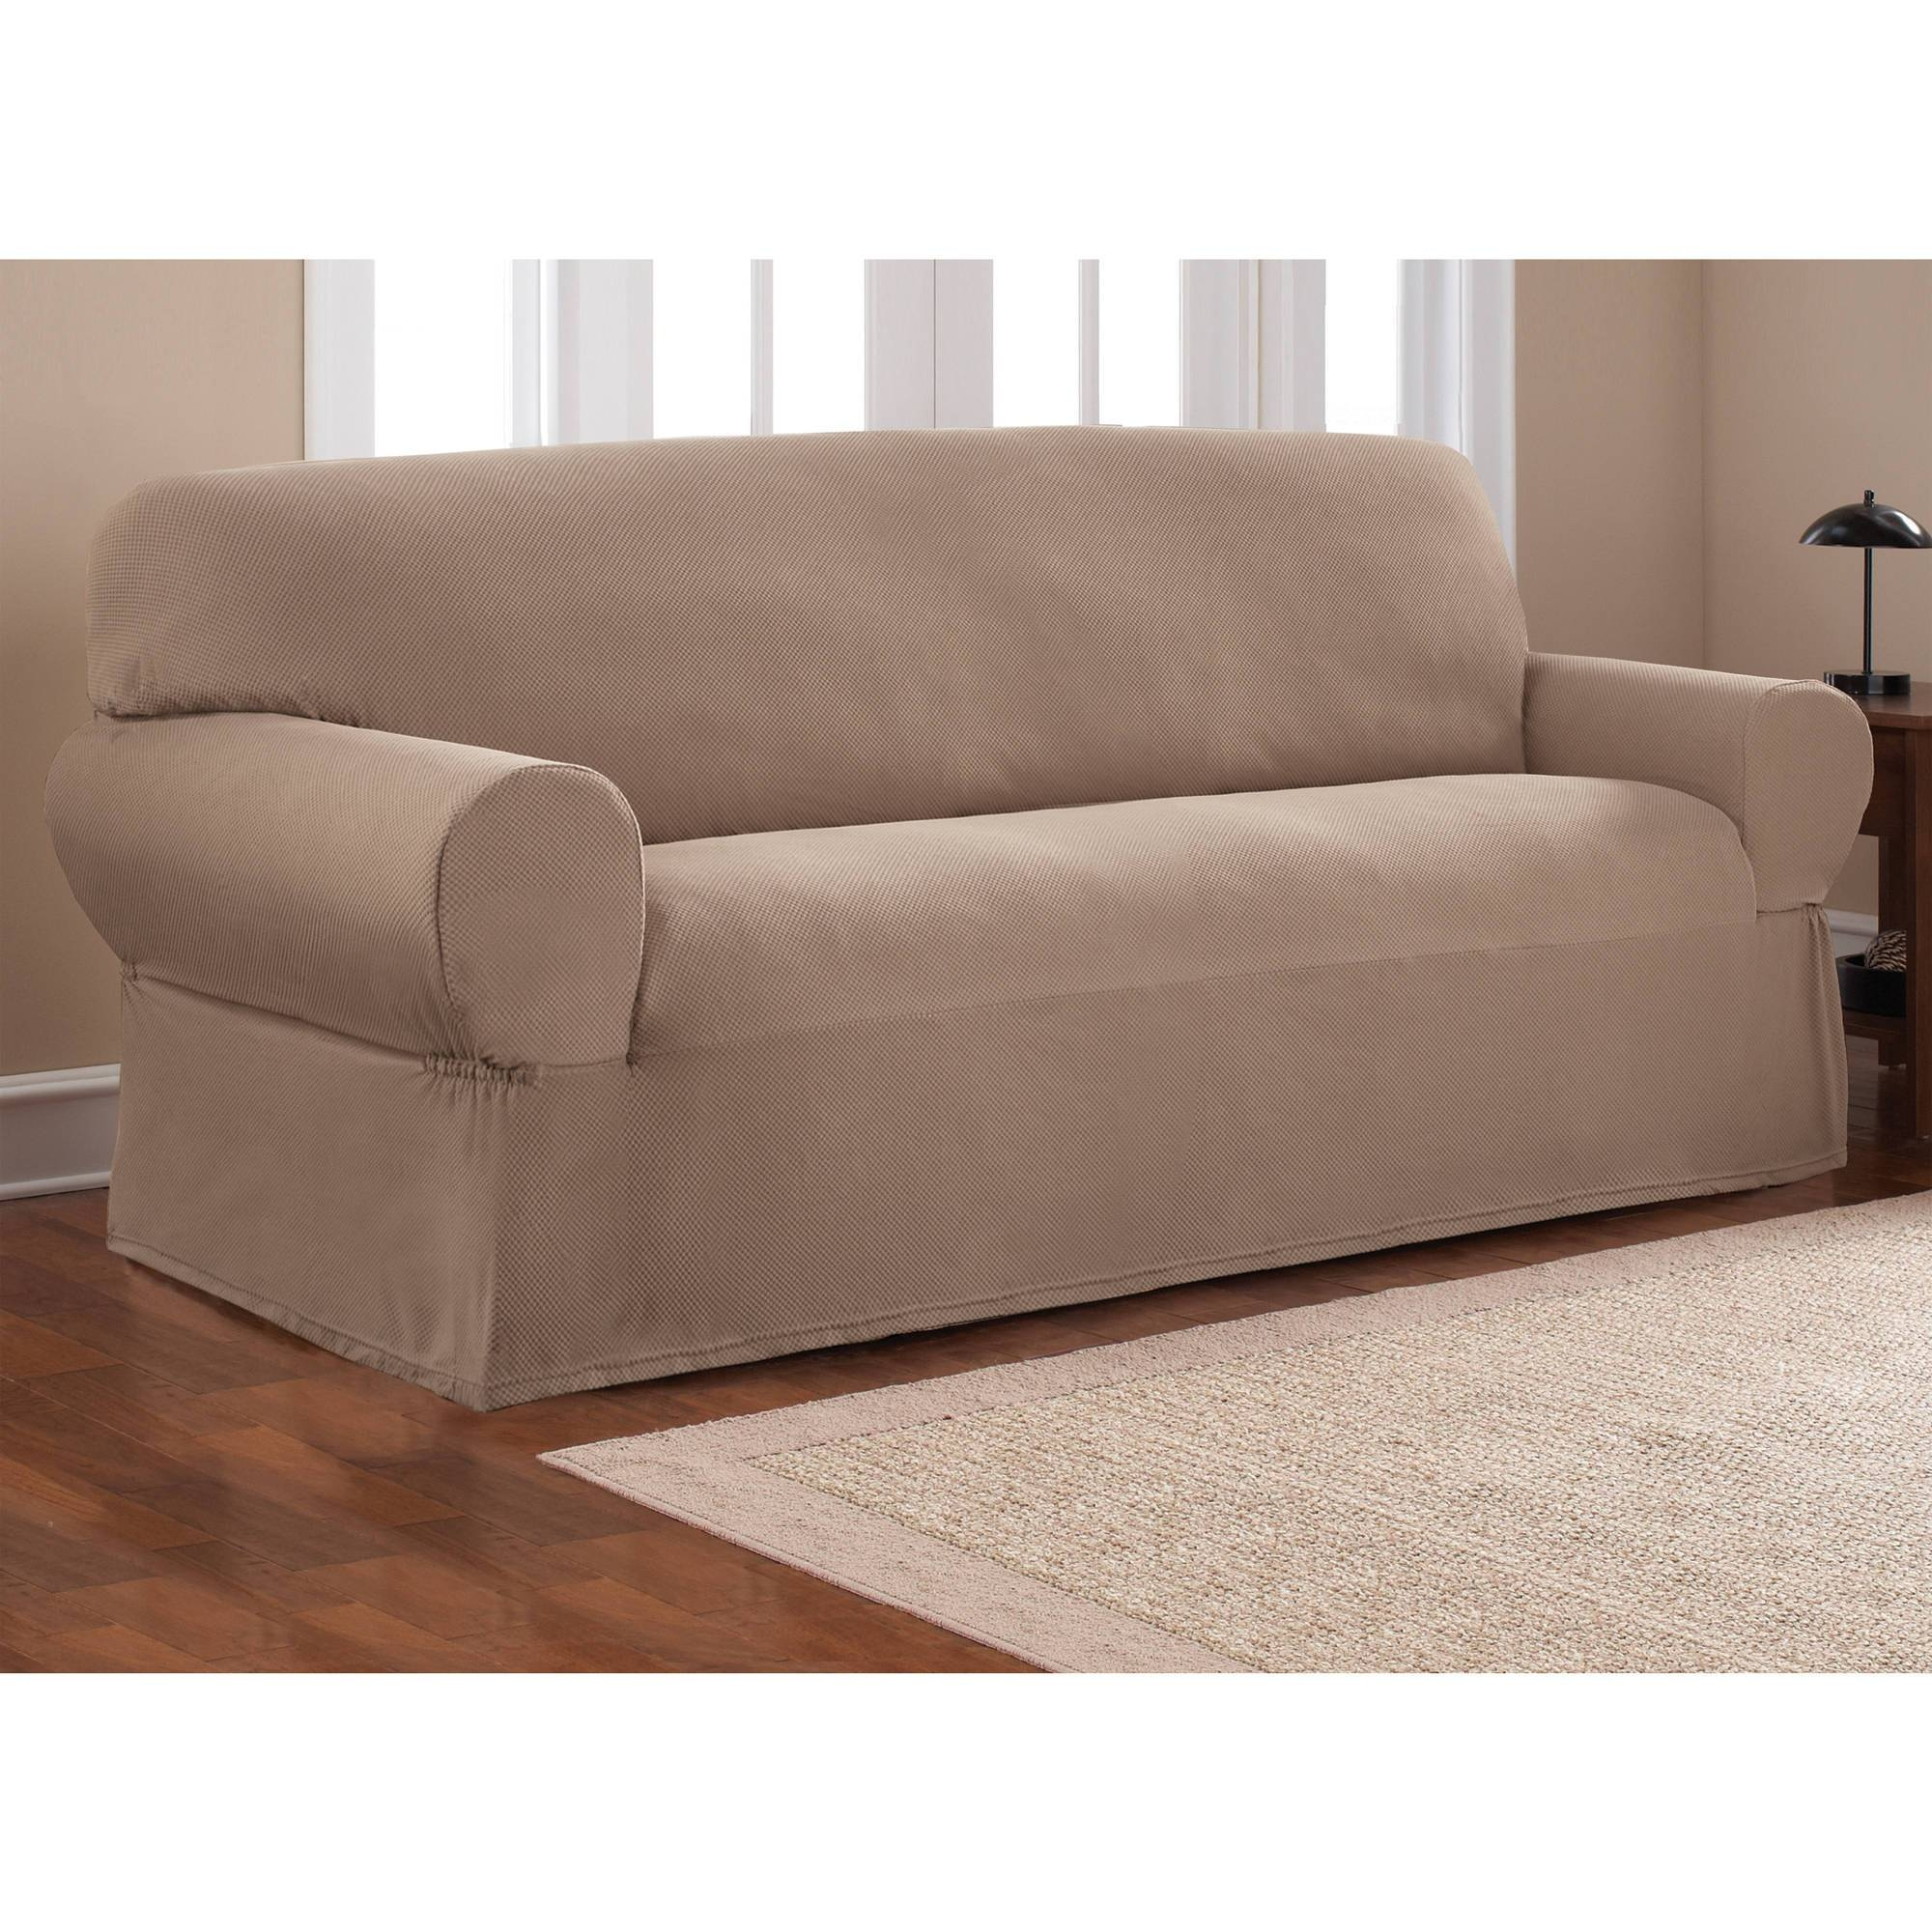 Mainstays 1-Piece Stretch Fabric Sofa Slipcover - Walmart within Slipcovers Sofas (Image 19 of 30)